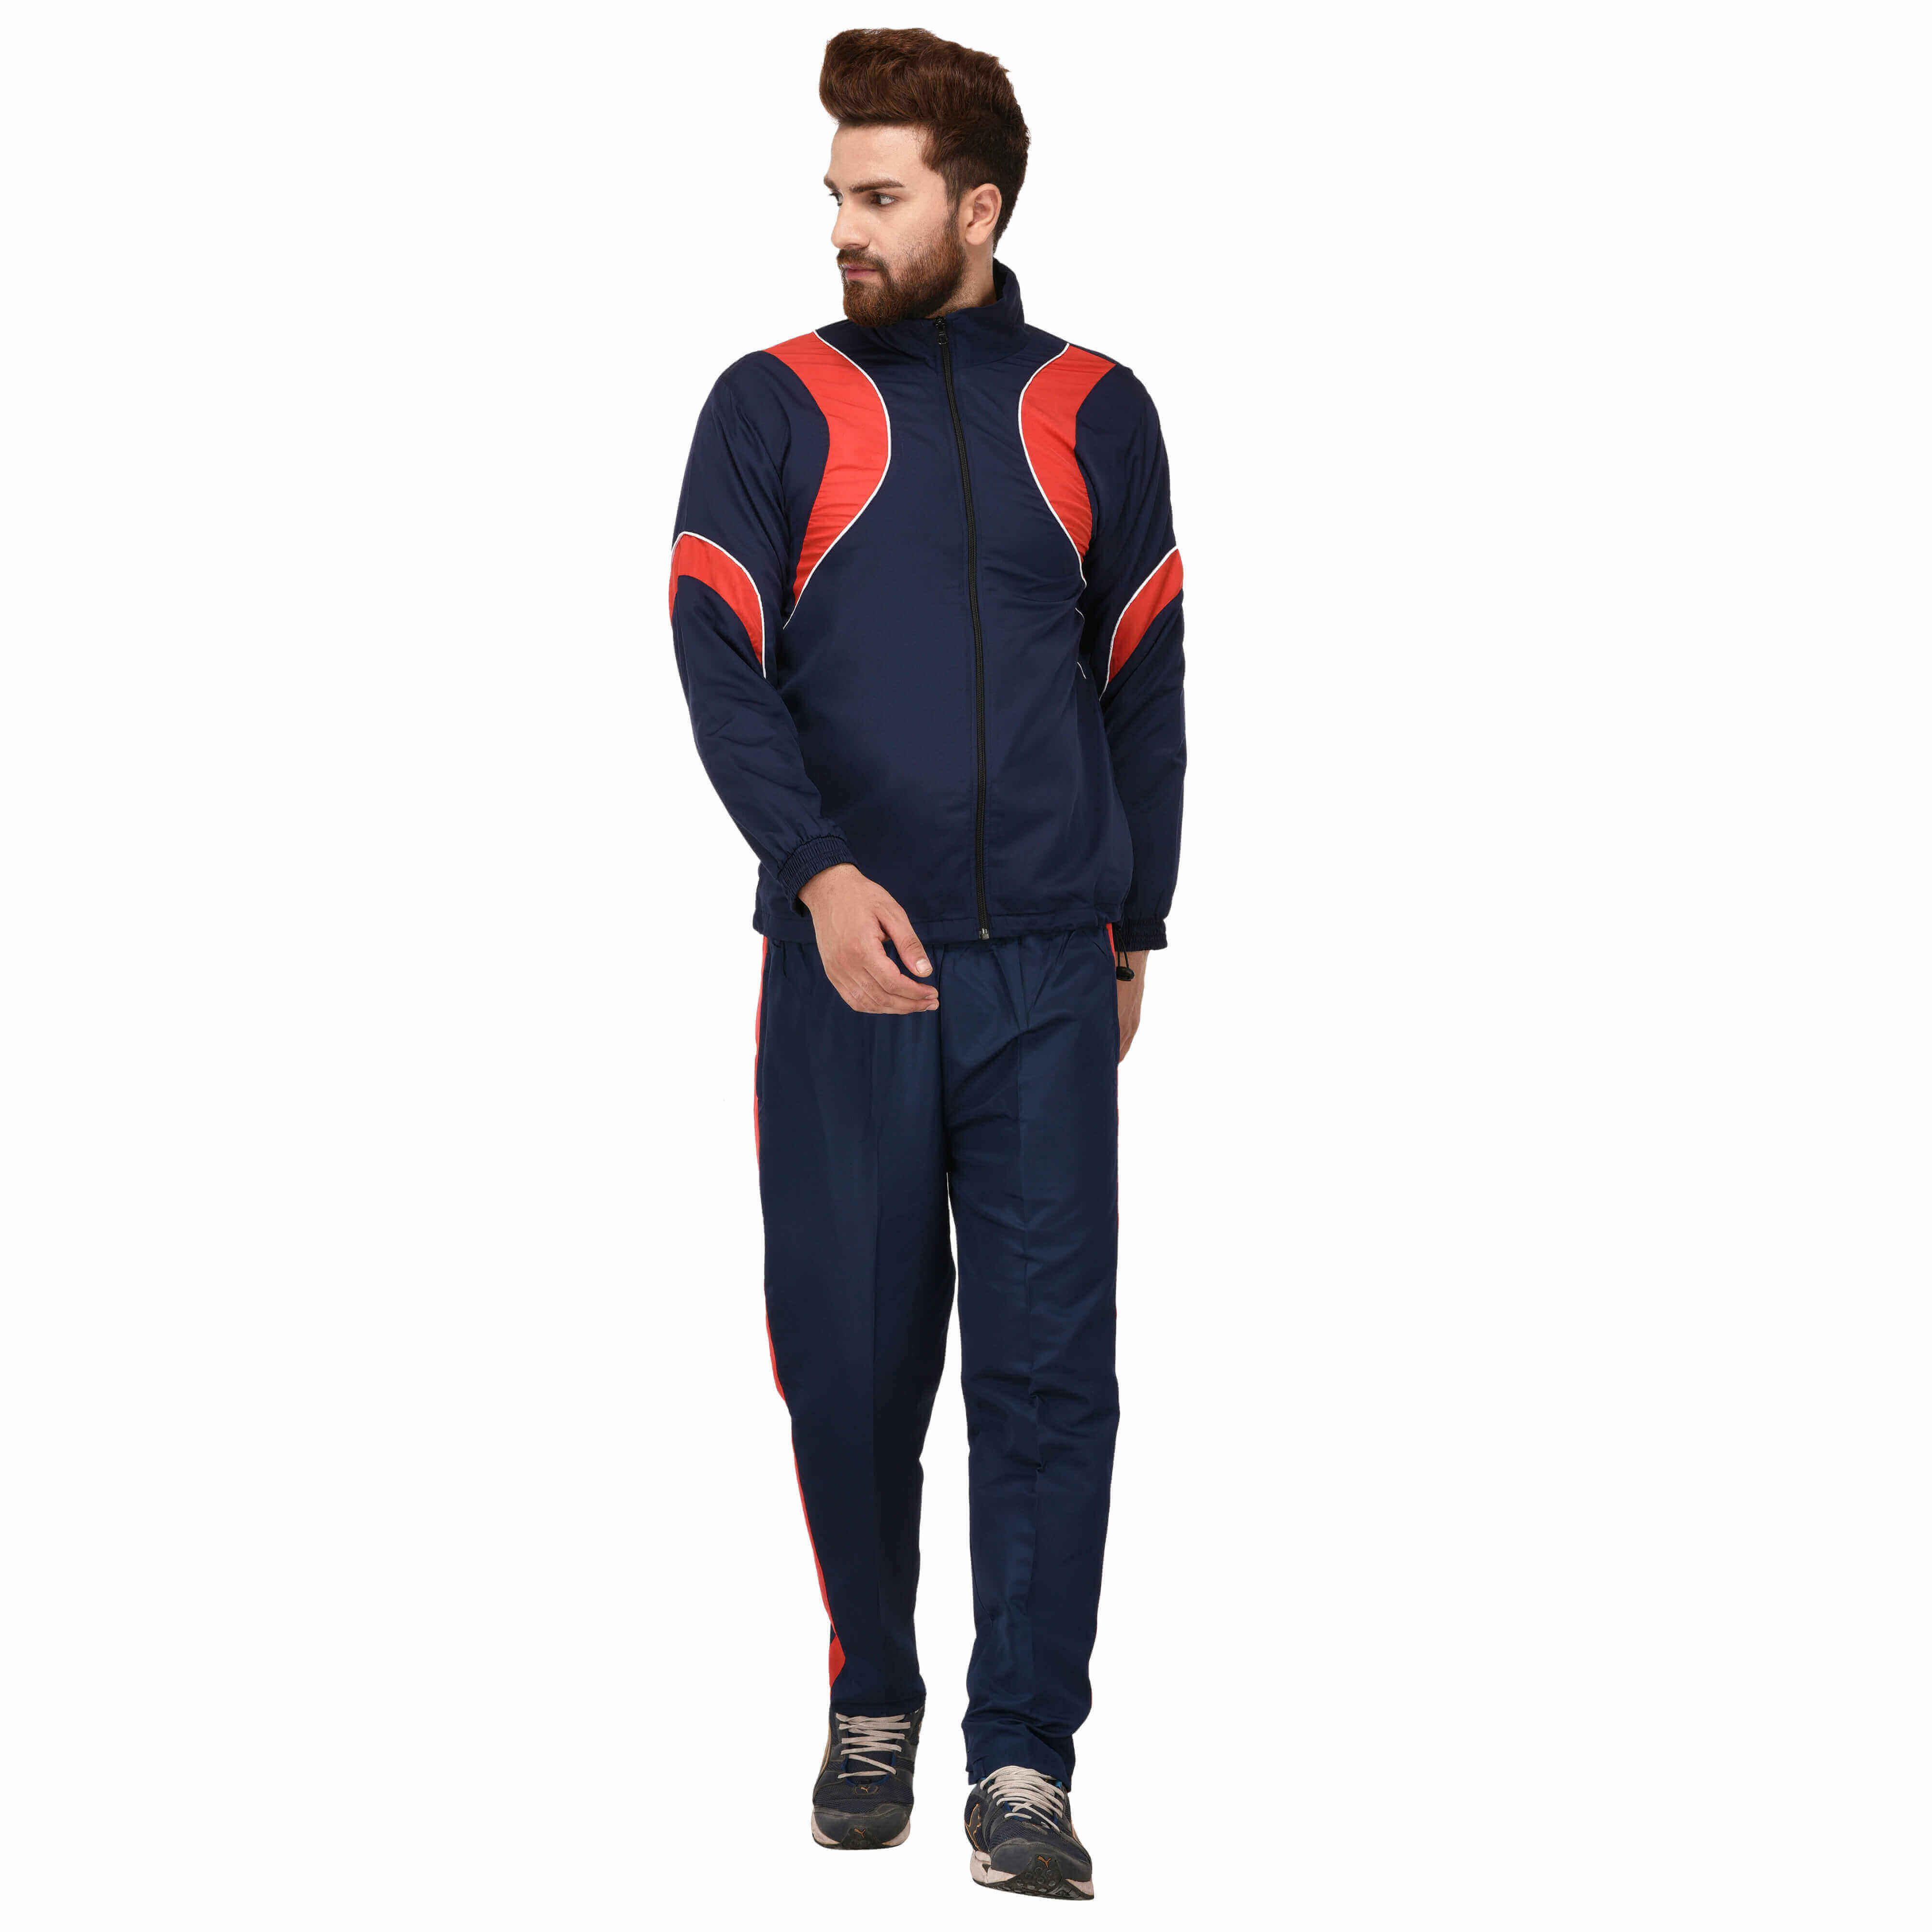 Red Tracksuit Manufacturers in Peru